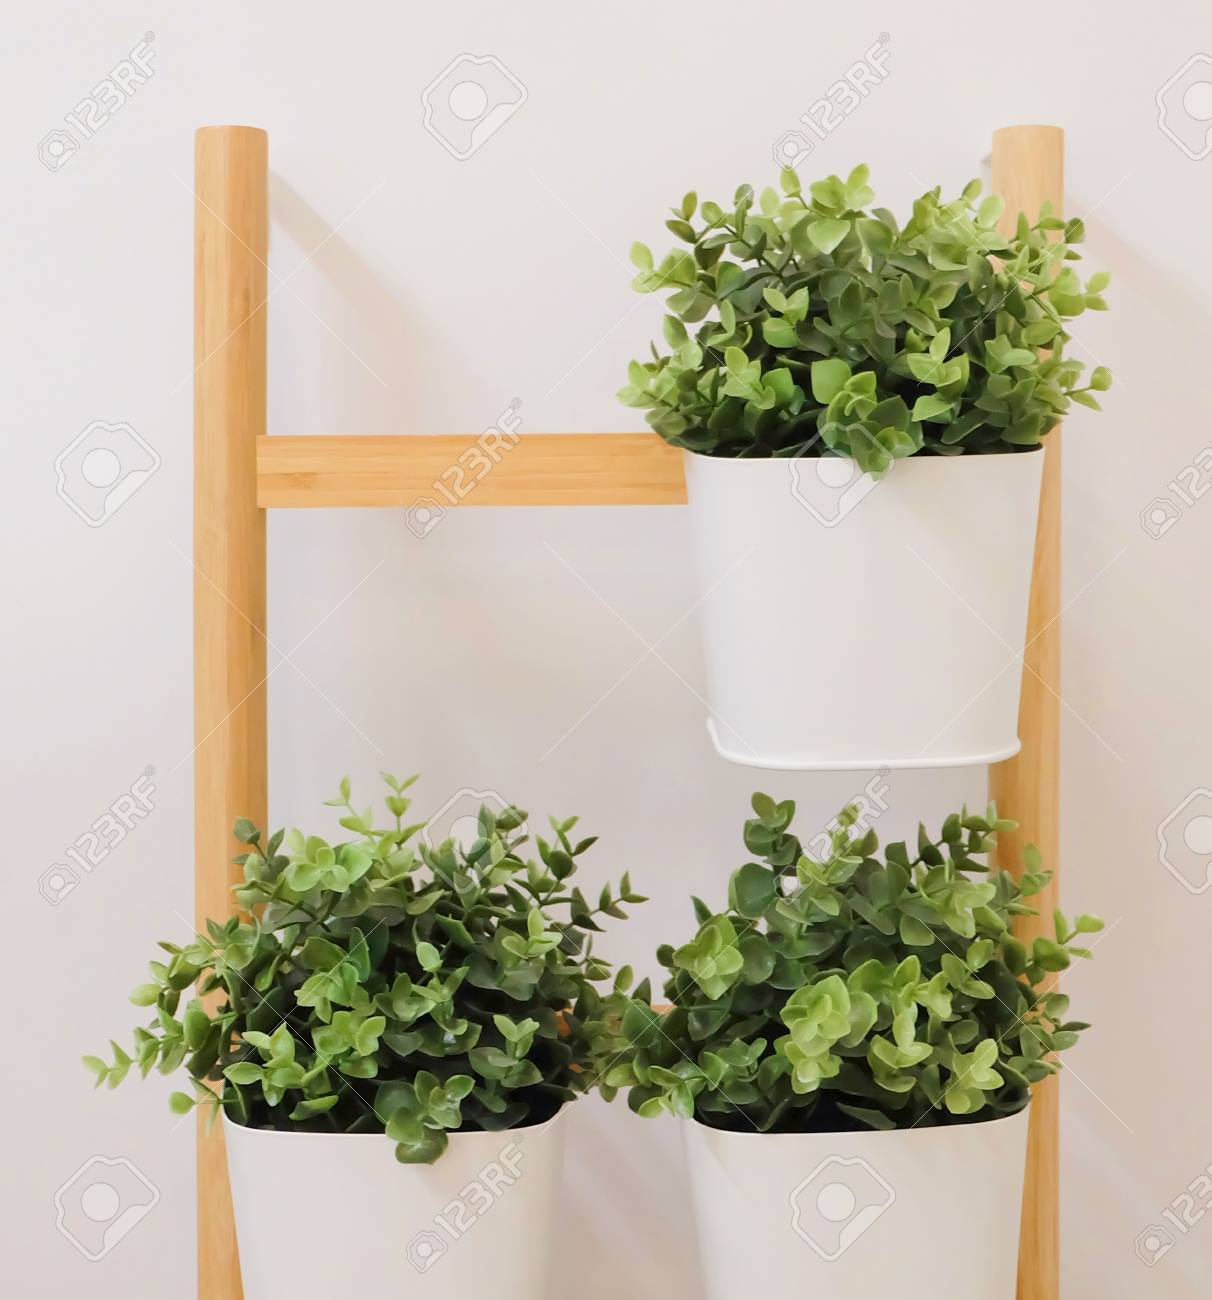 123RF.com & Artificial Green Plants in A White Metal Flower Pots Stand on..